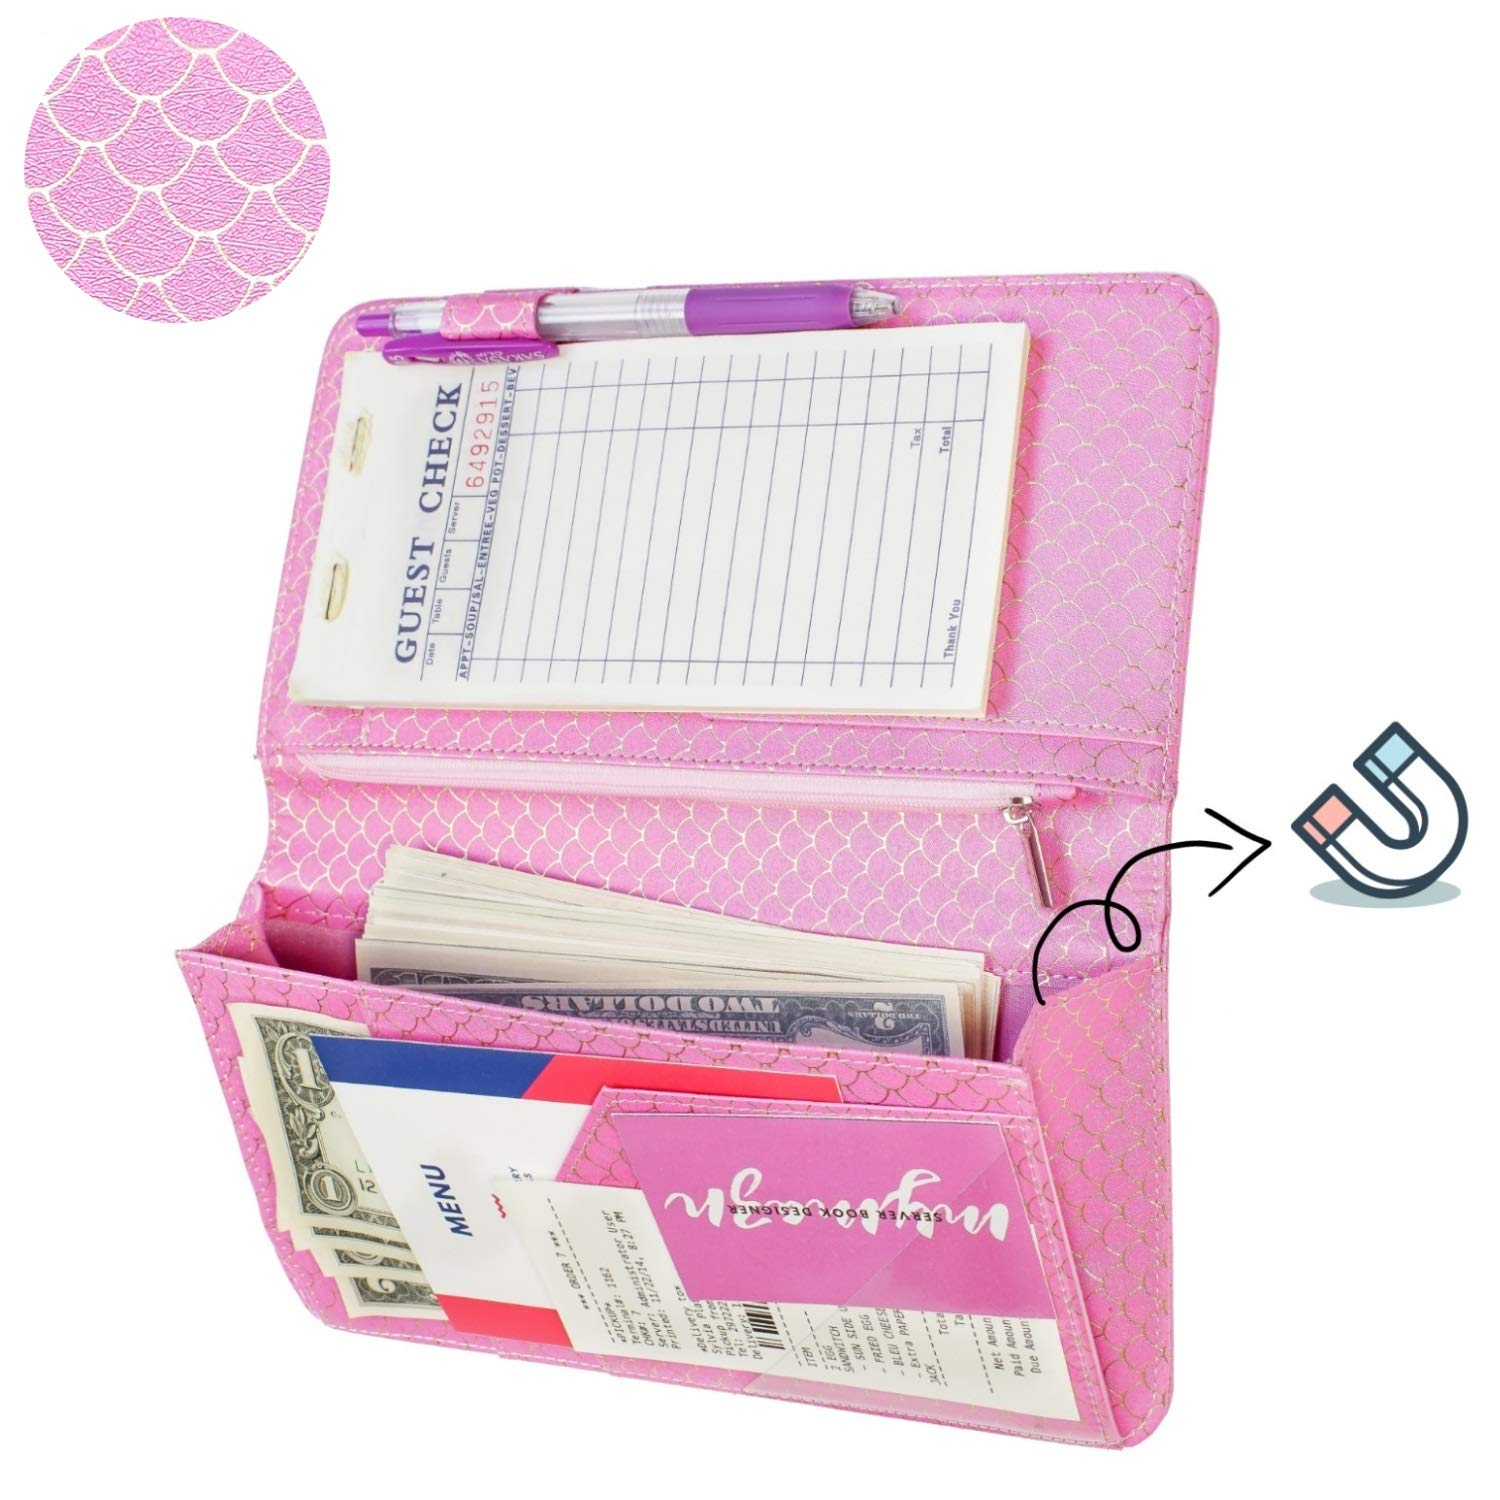 Big Size 5 X 9, Mermaid Pink Mymazn Server books for Waitress Wallet Shimmer Cute Waitressing Book Waiter Organizer with Magnetic Money Zipper Pocket Fits Restaurant Pad Guest Checkbook